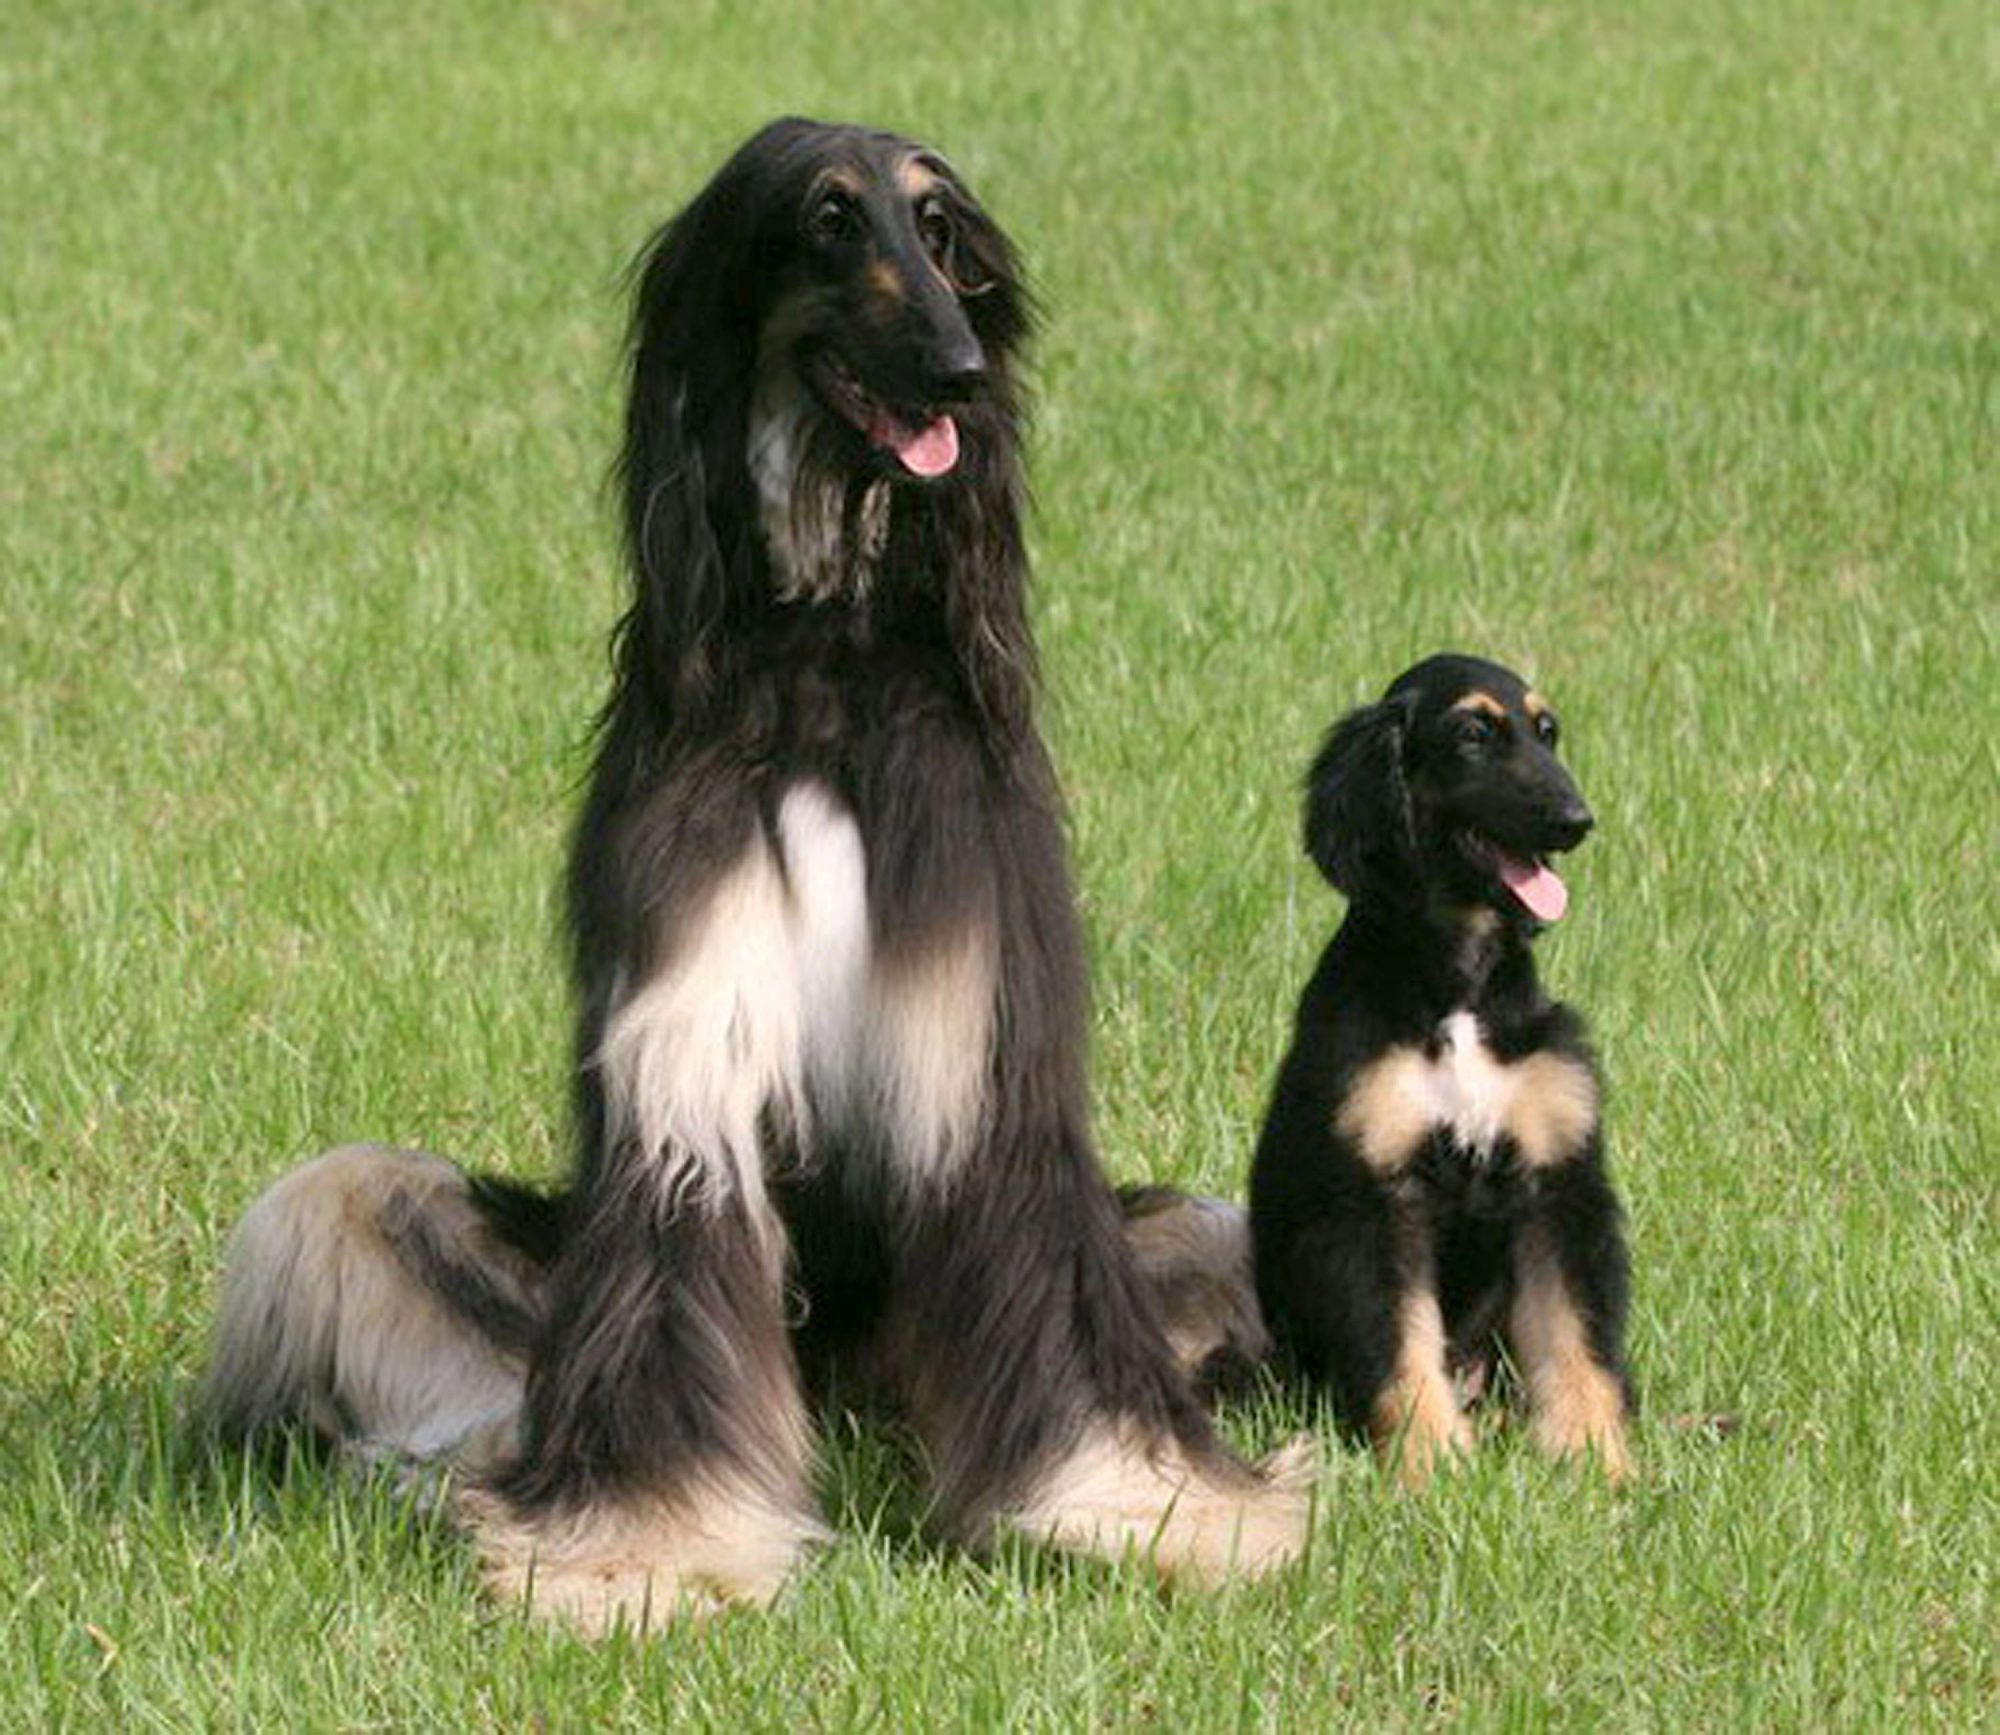 Scientists Announce World's First Cloned Dog